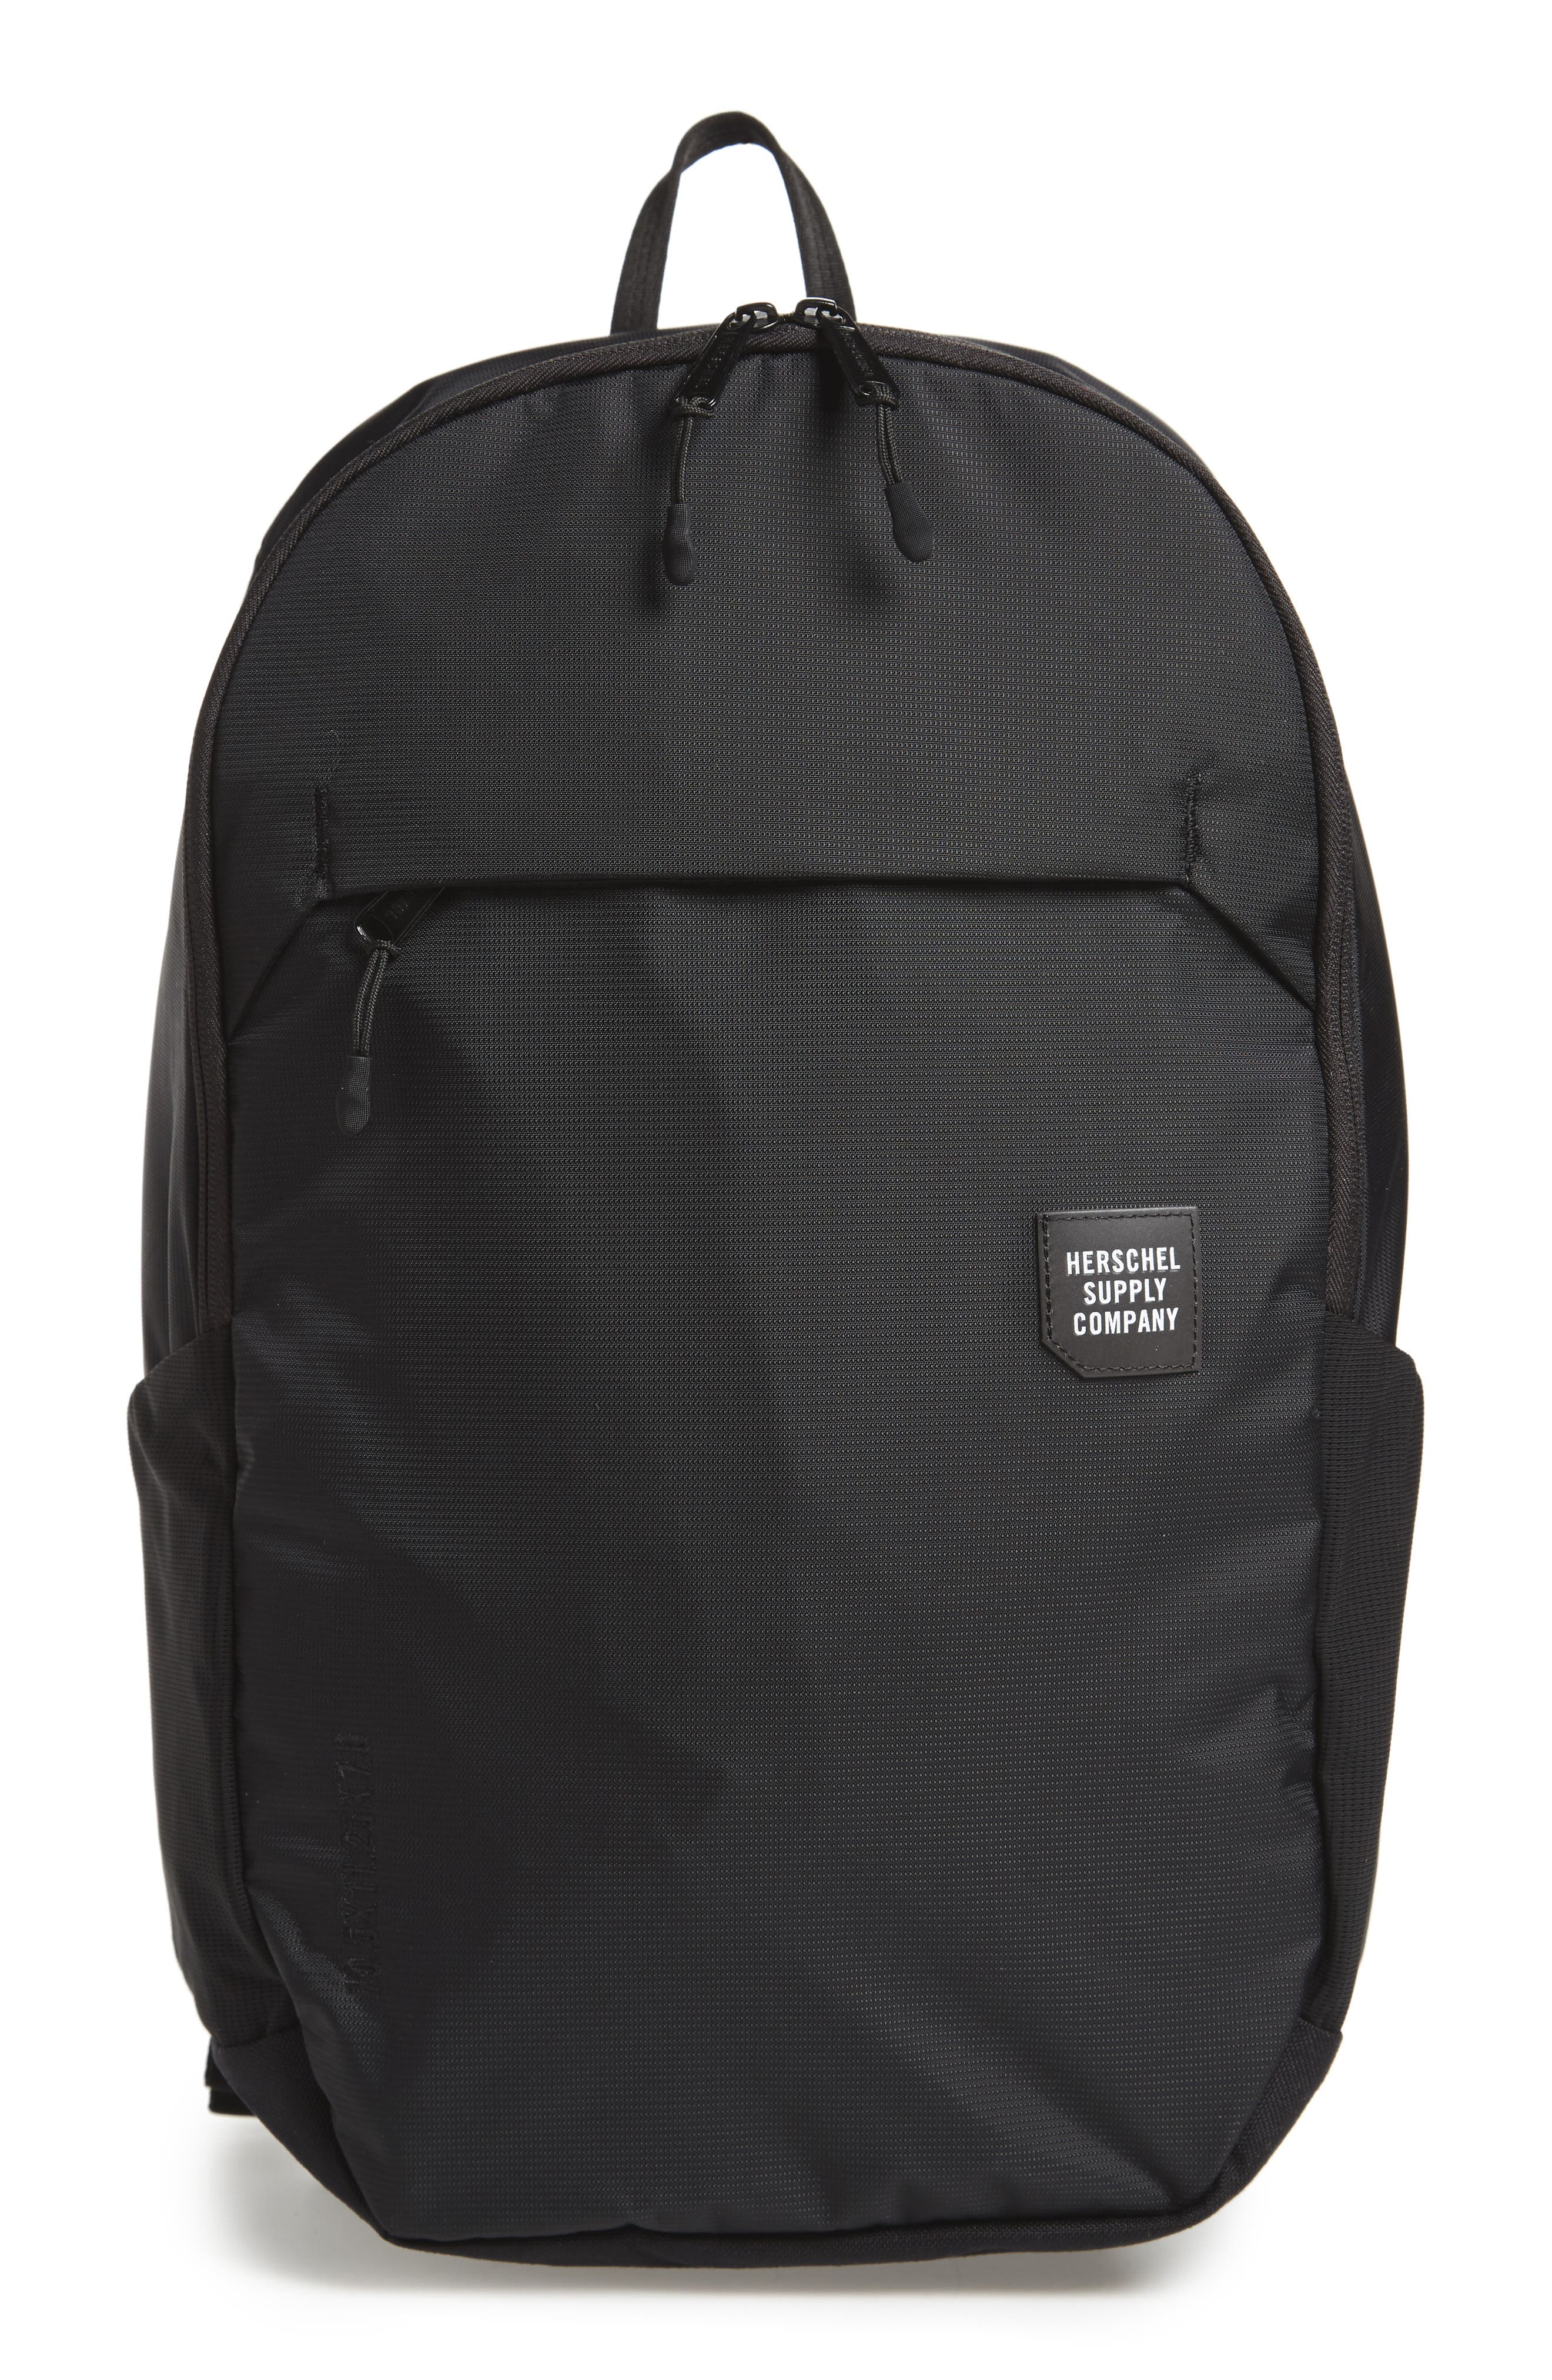 Mammoth Trail Backpack,                         Main,                         color, Black